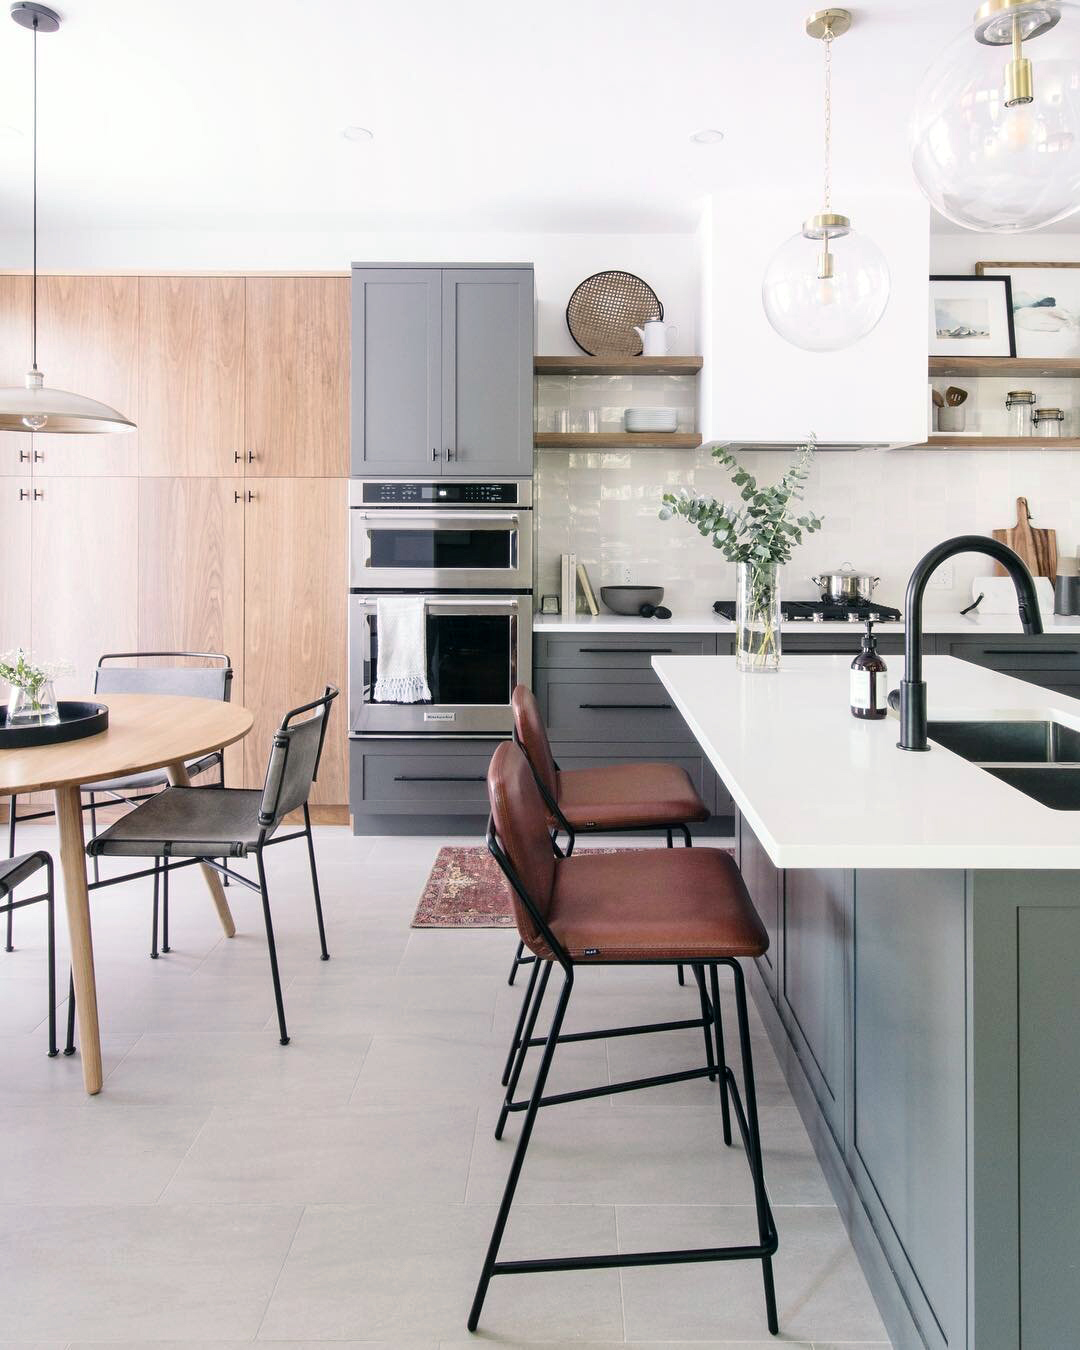 orleans_kitchen_remodel1_edit.jpg